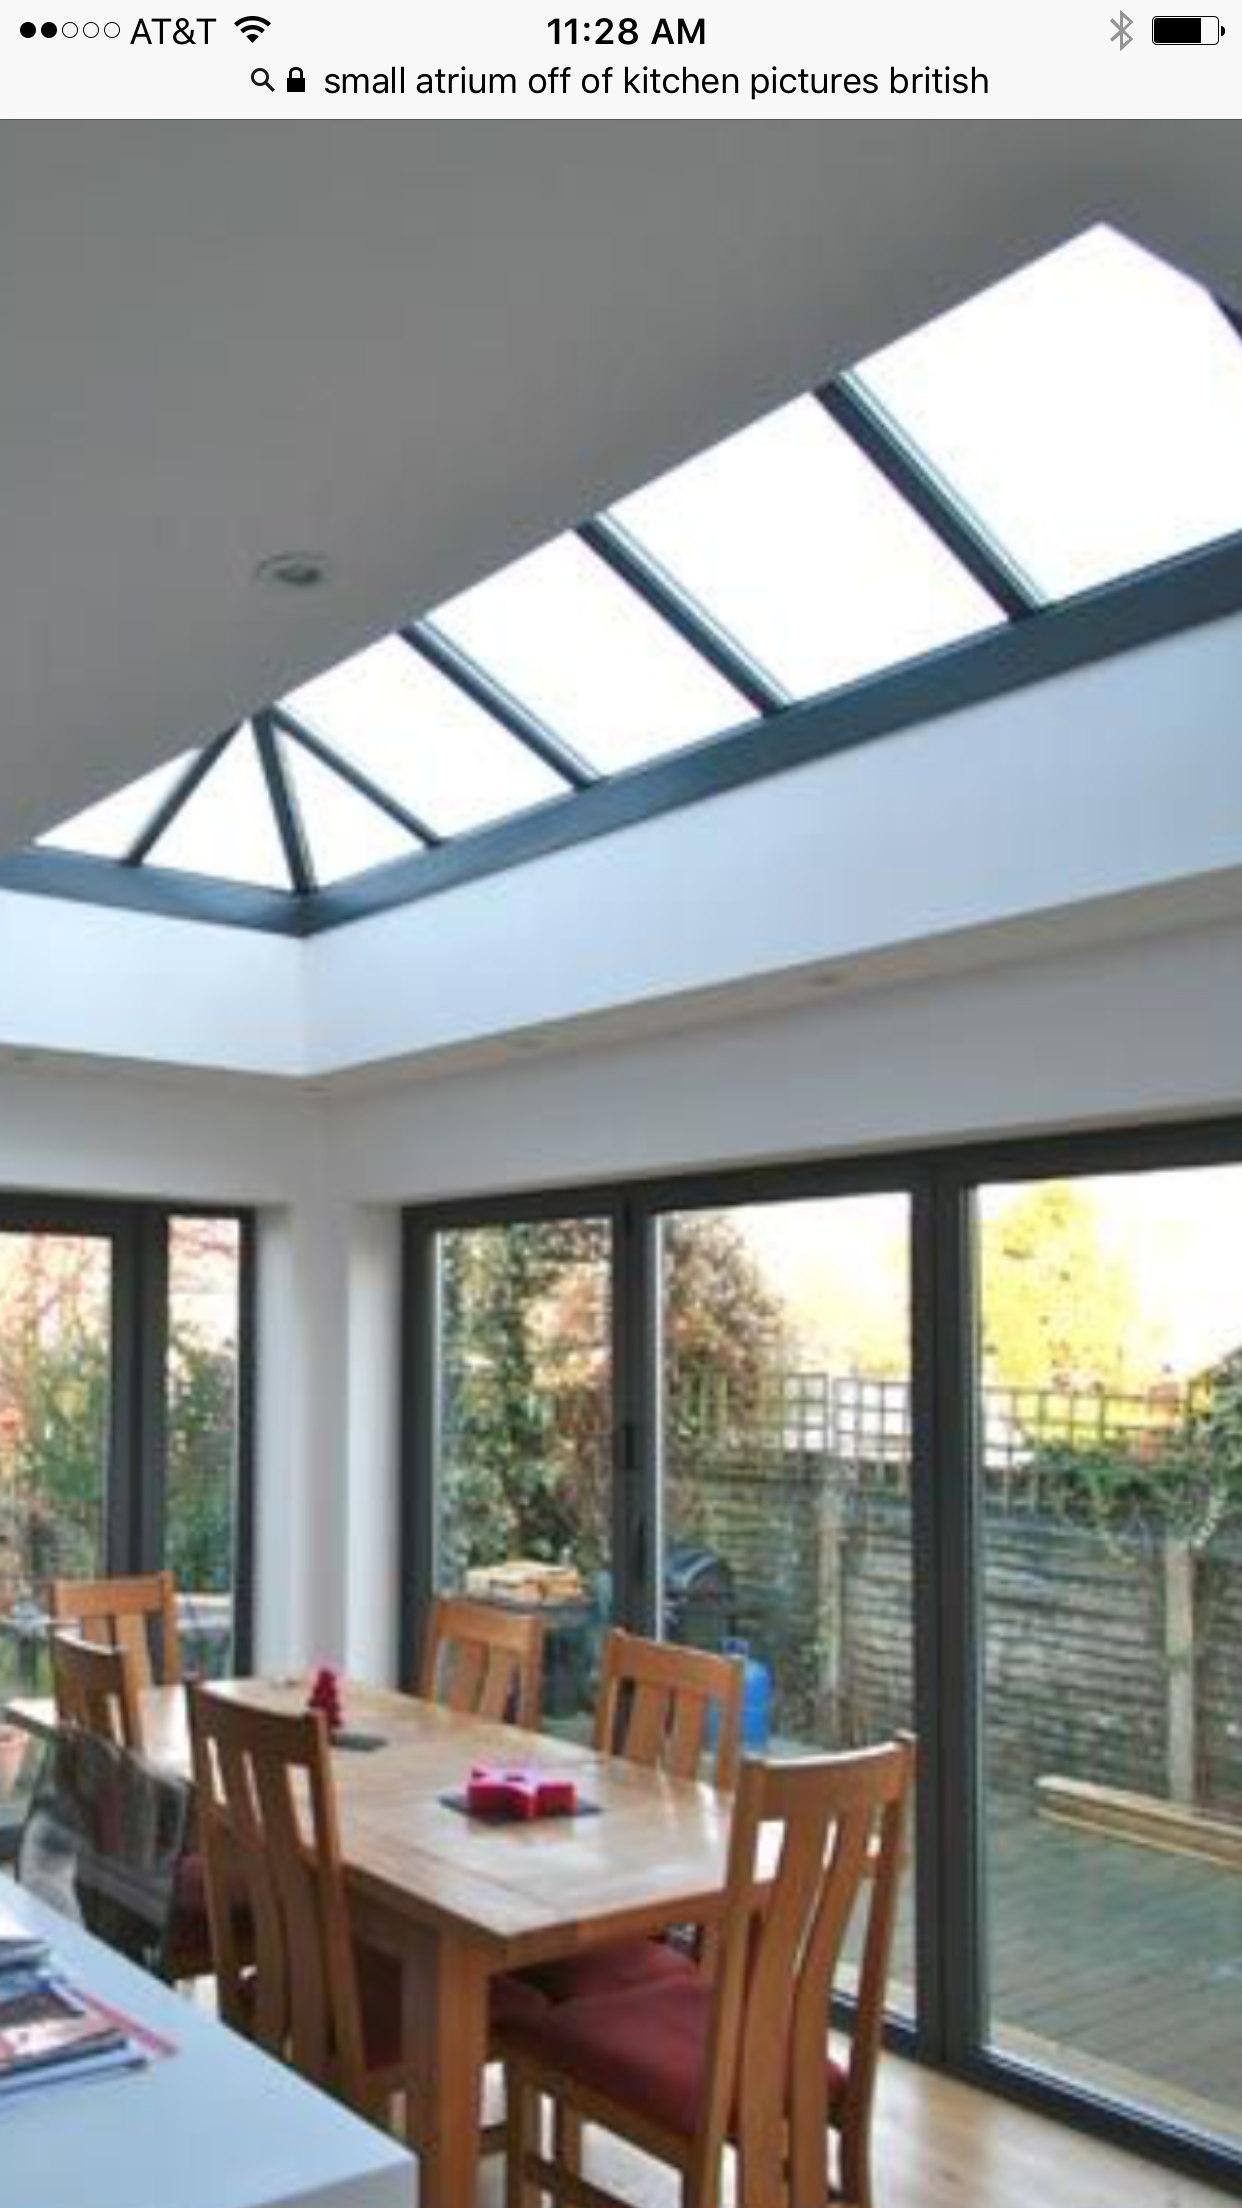 7 Stunning Home Extension Ideas: Conservatory Kitchen, Home, House Styles